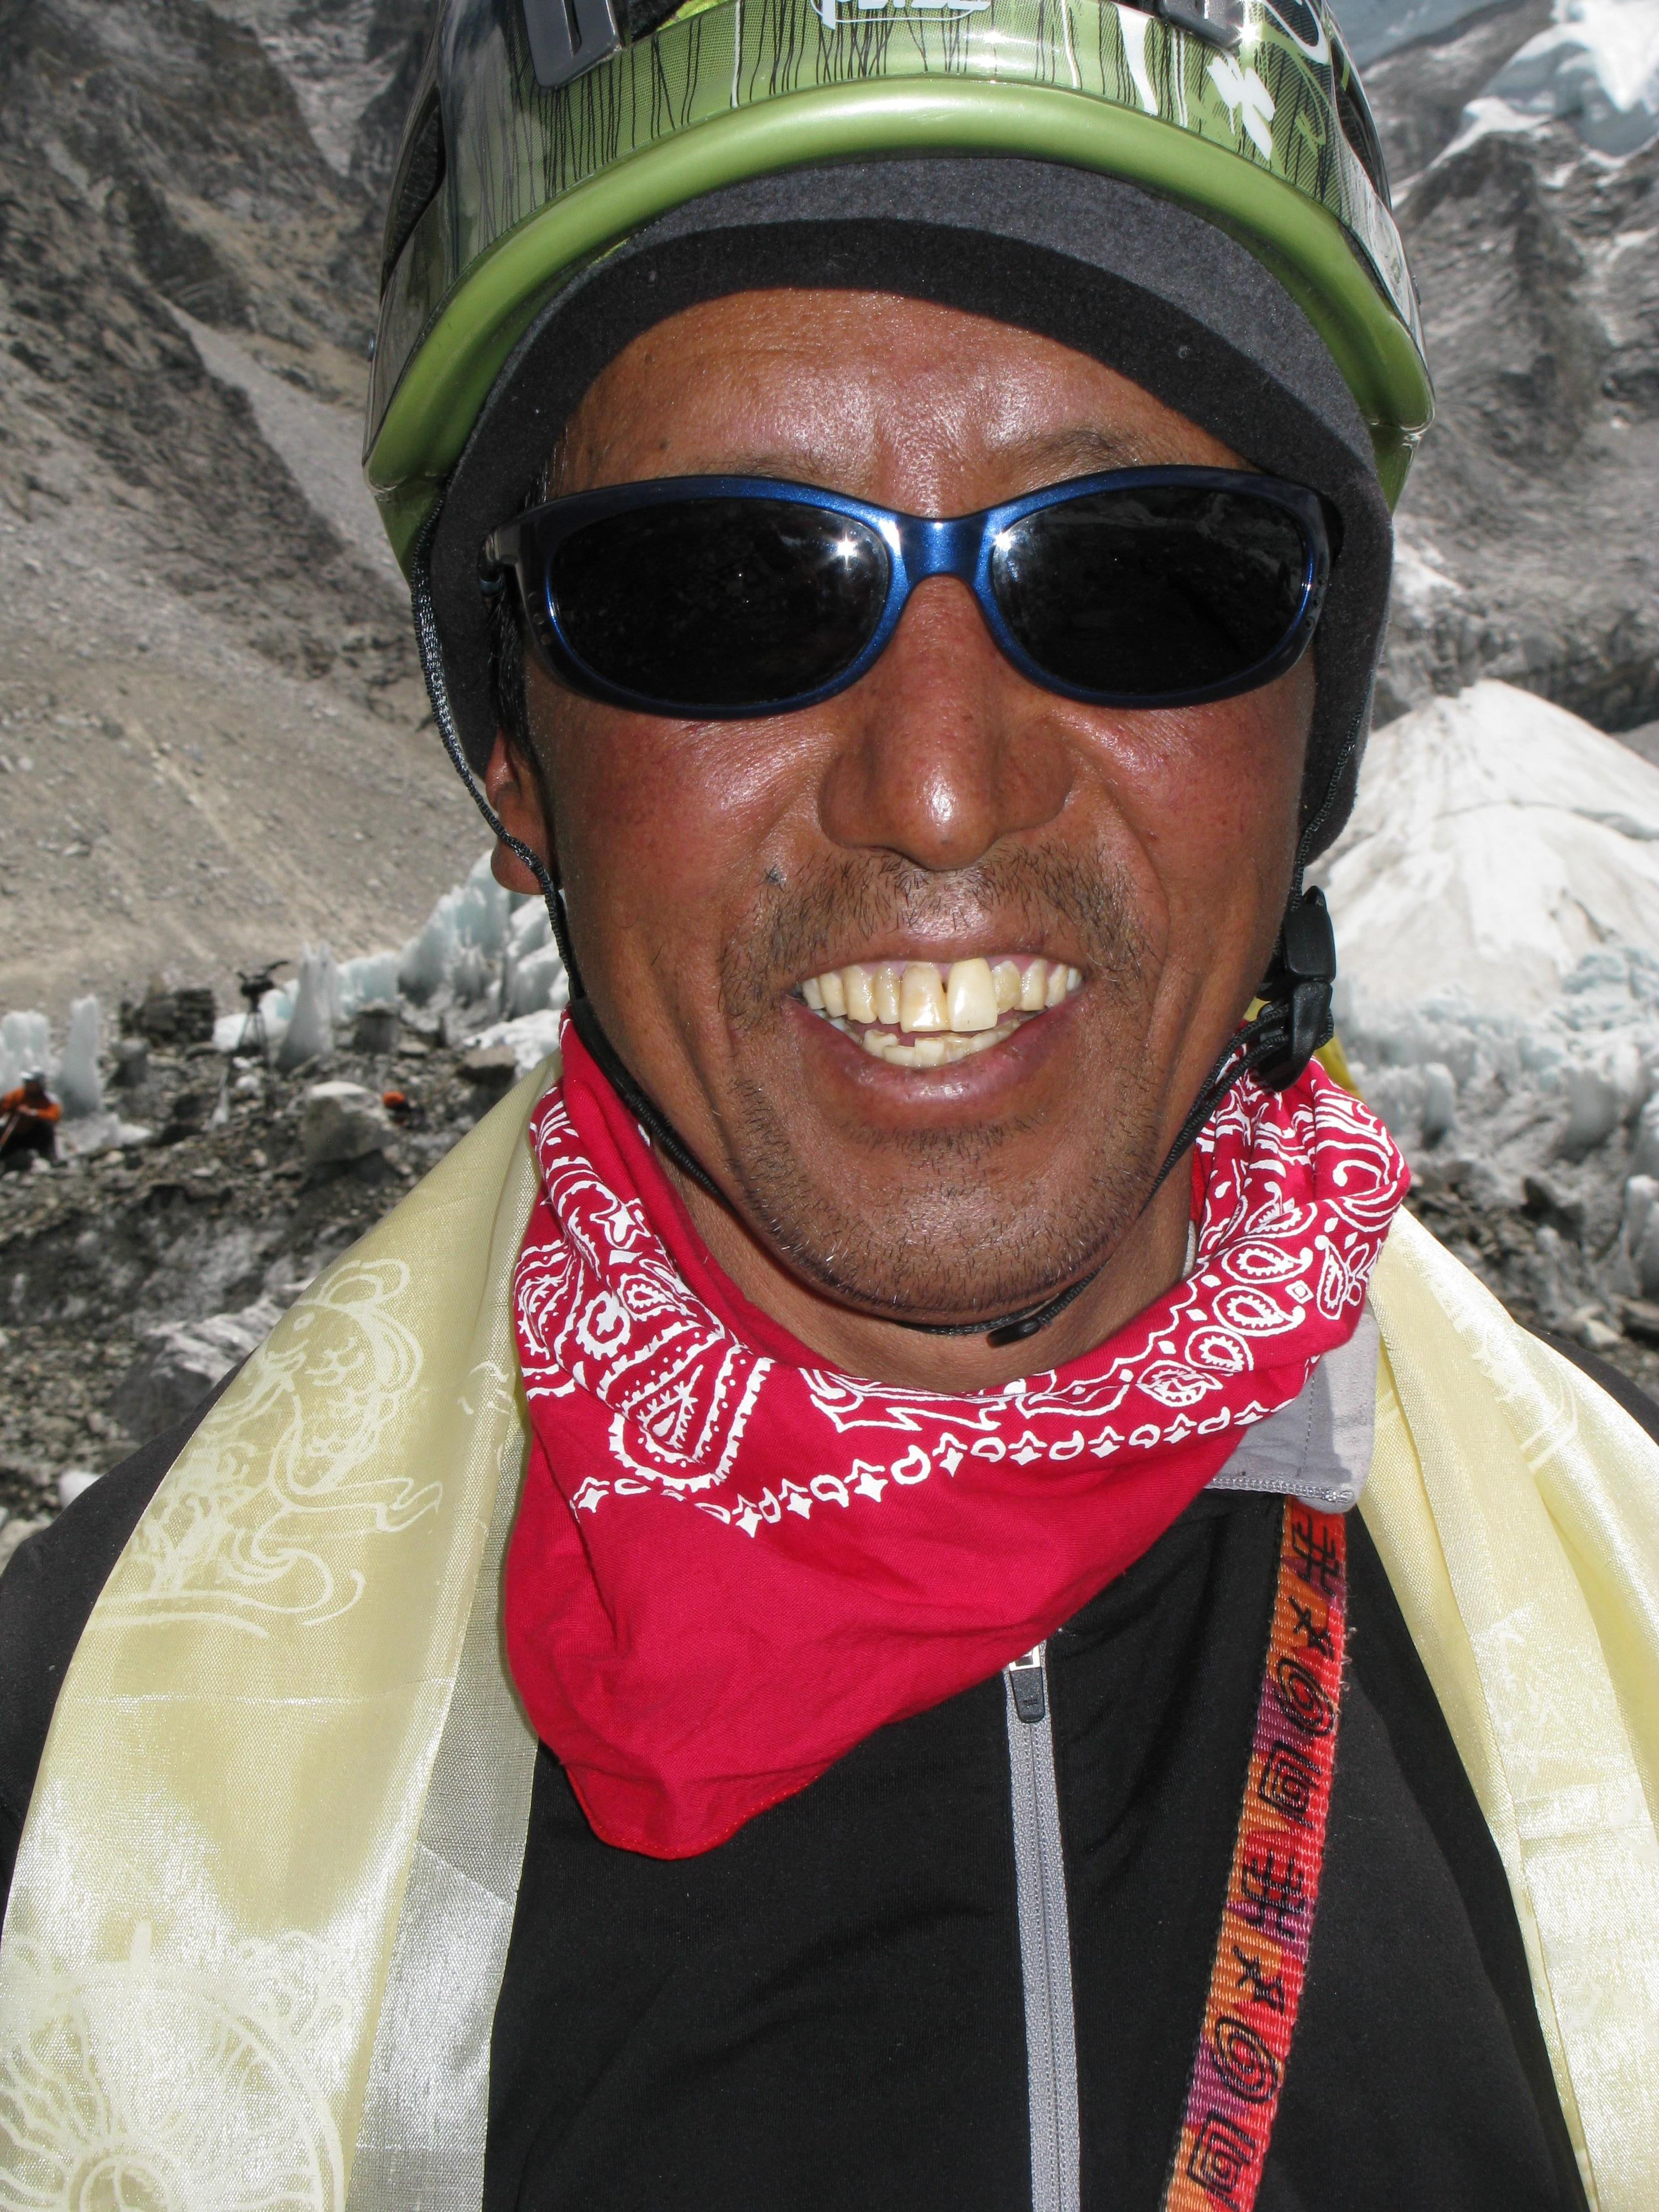 Apa Sherpa, the world record holder for 21 summits of Mount Everest.